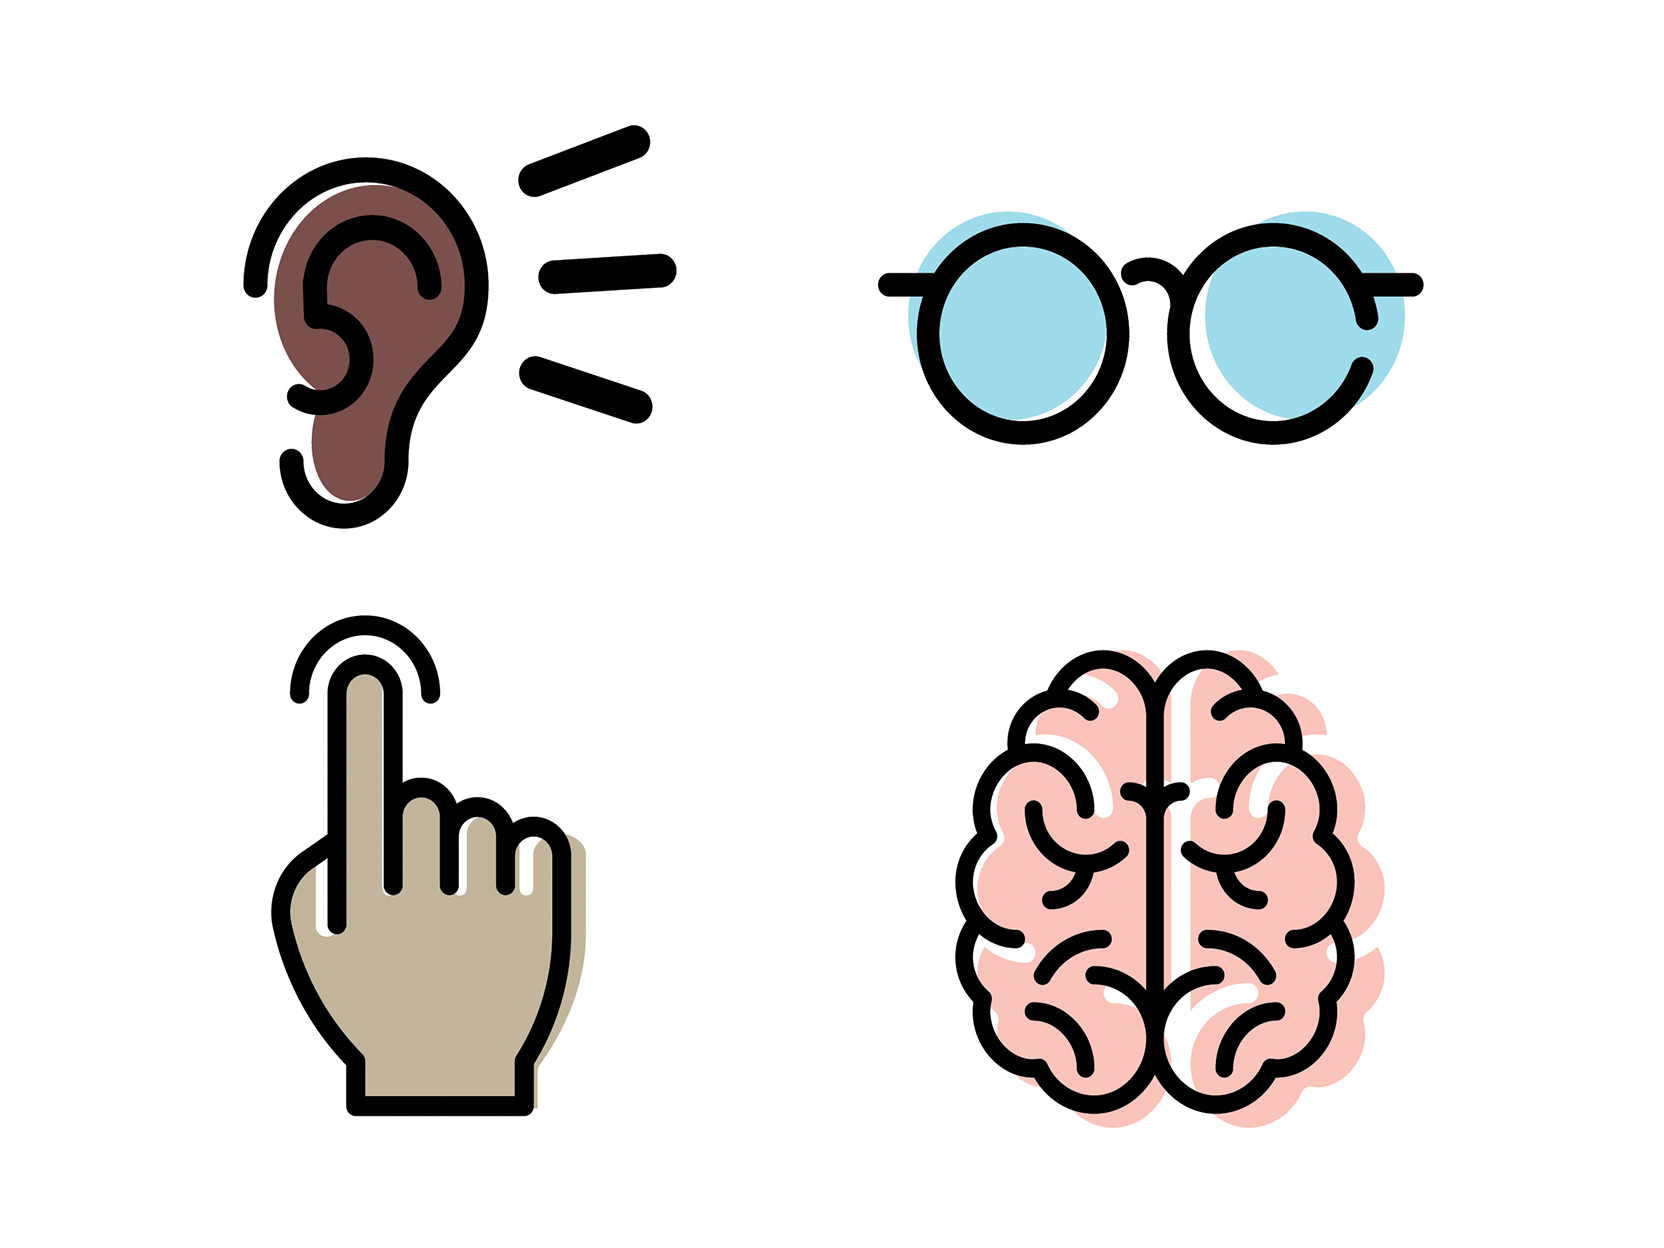 Graphic Icons Depicting Visual, Cognitive, Motor Skill and Audiory Aspects of Accessible Design